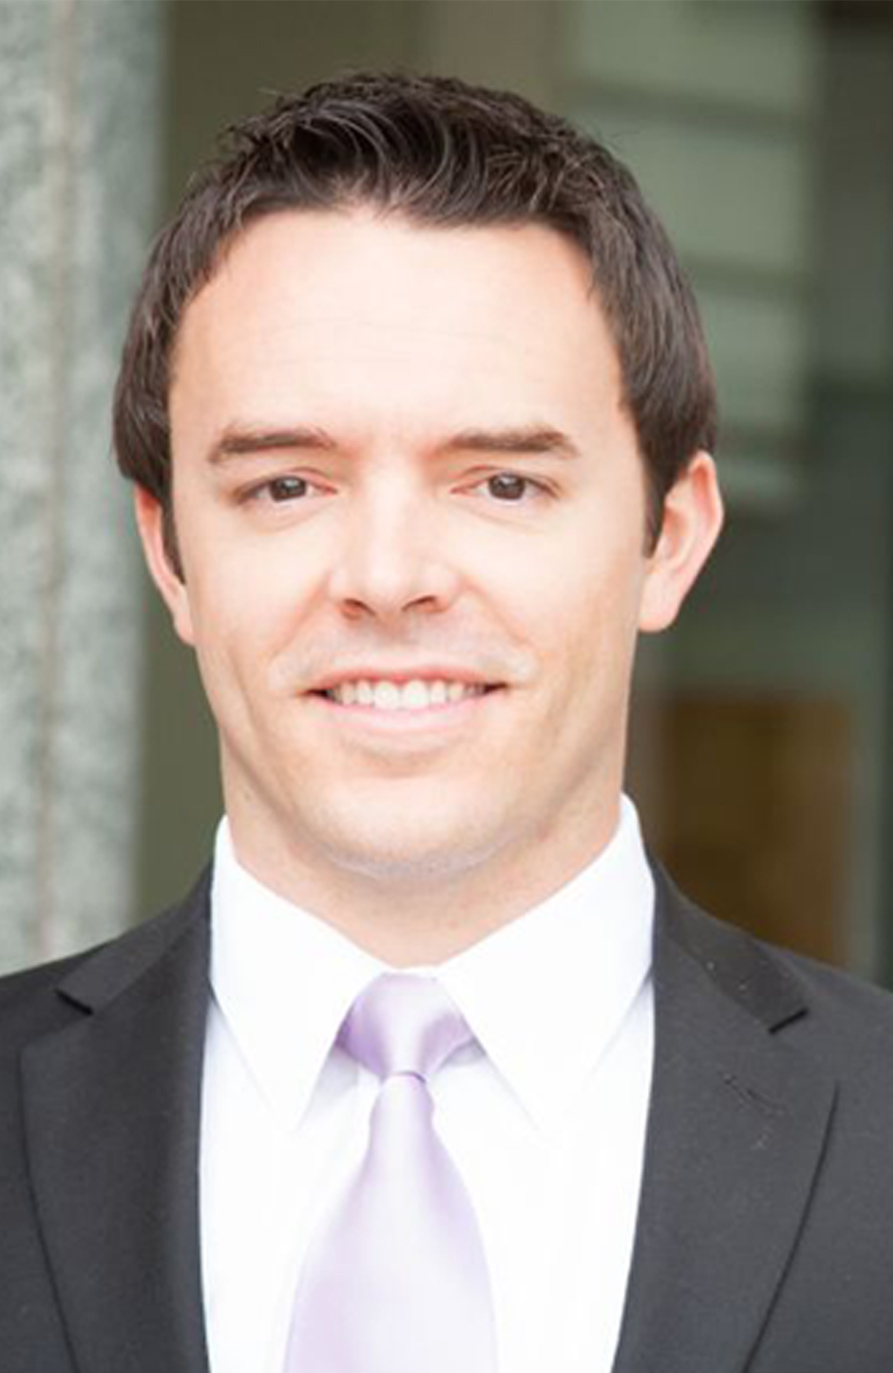 Nick Wajda, Attorney At Law - Eliminate Your Debt and Get a Free Consultation!